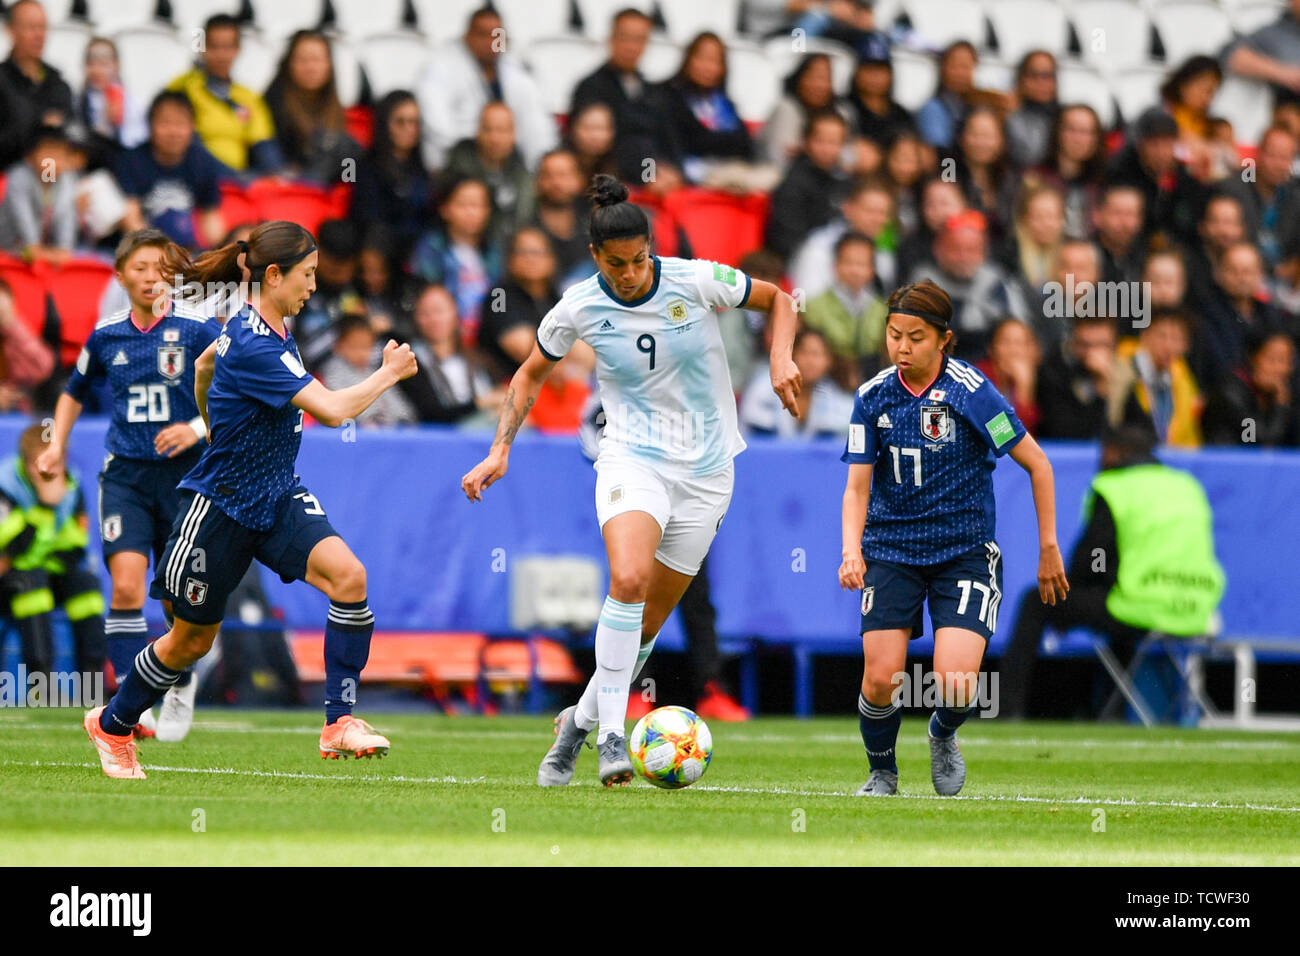 10 june 2019 Paris, France Soccer Women's World Cup France 2019: Argentina v Japan   Two japanese Players try to stop Florencia Soledad Jaimes (Argent - Stock Image